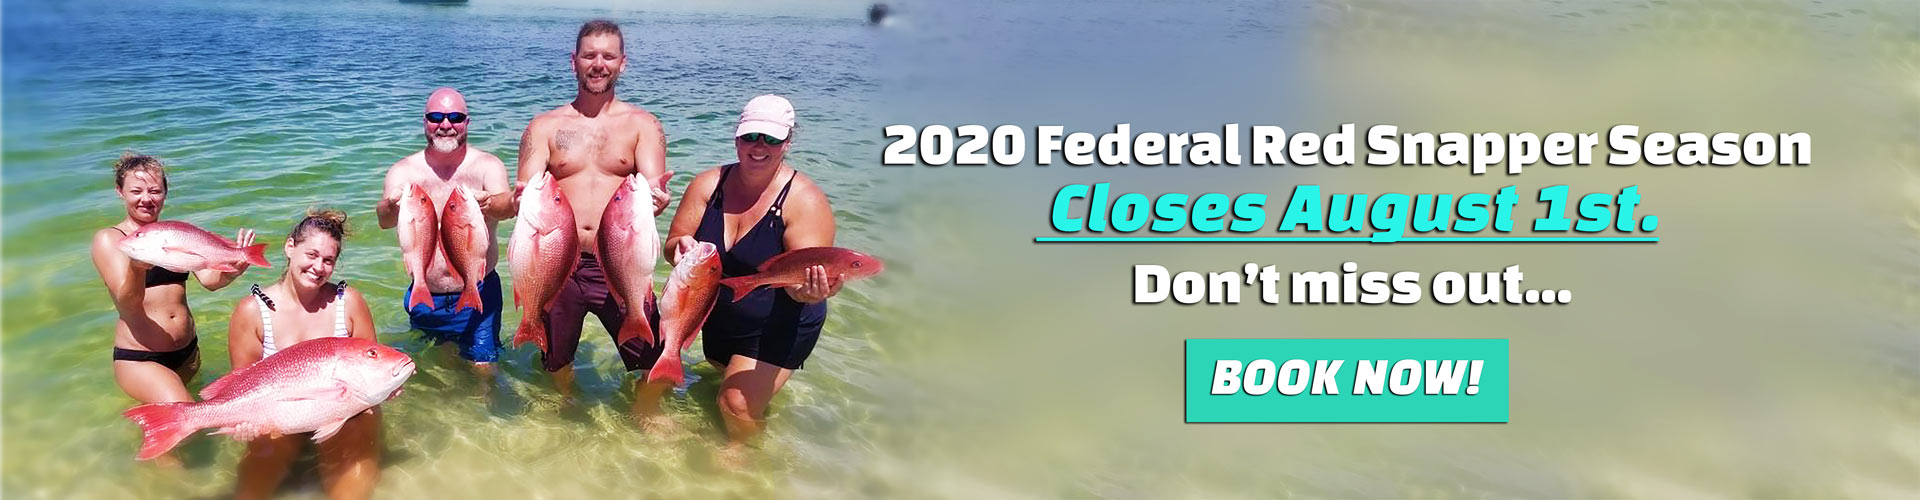 2020 Federal Red Snapper Season closes August 1st. Don't miss out, book now!